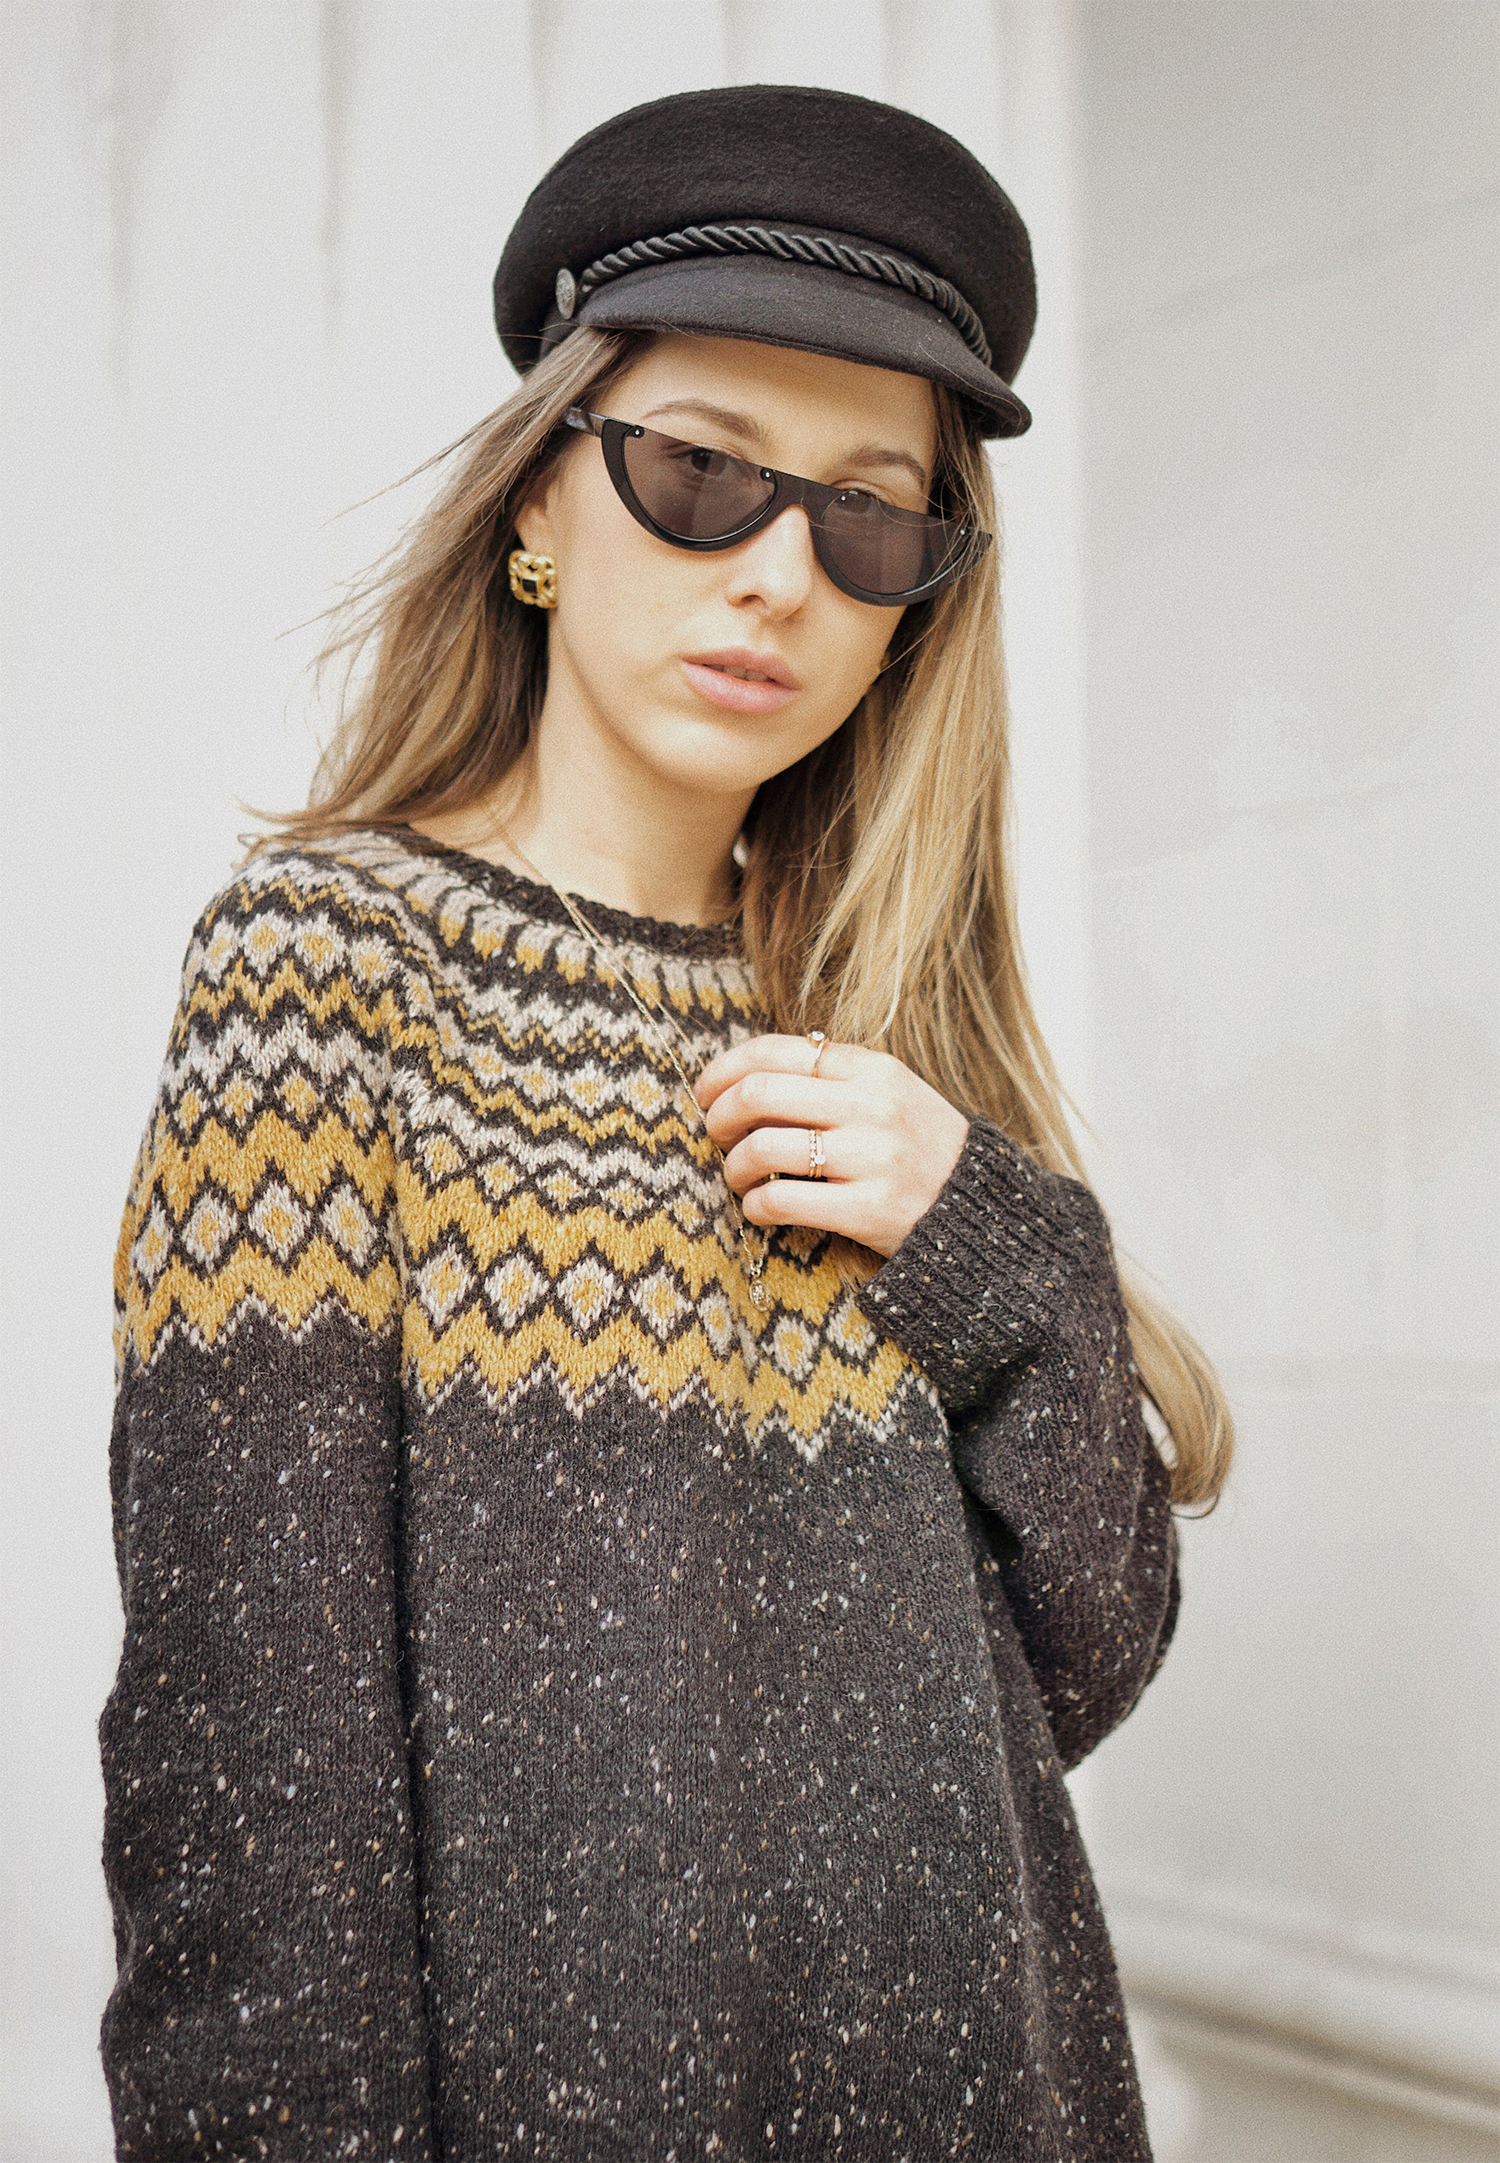 handmade_lopapeysa_intoclothing_jacquard_sweater_streetstyle_thewhiteocean_lenajuice_10